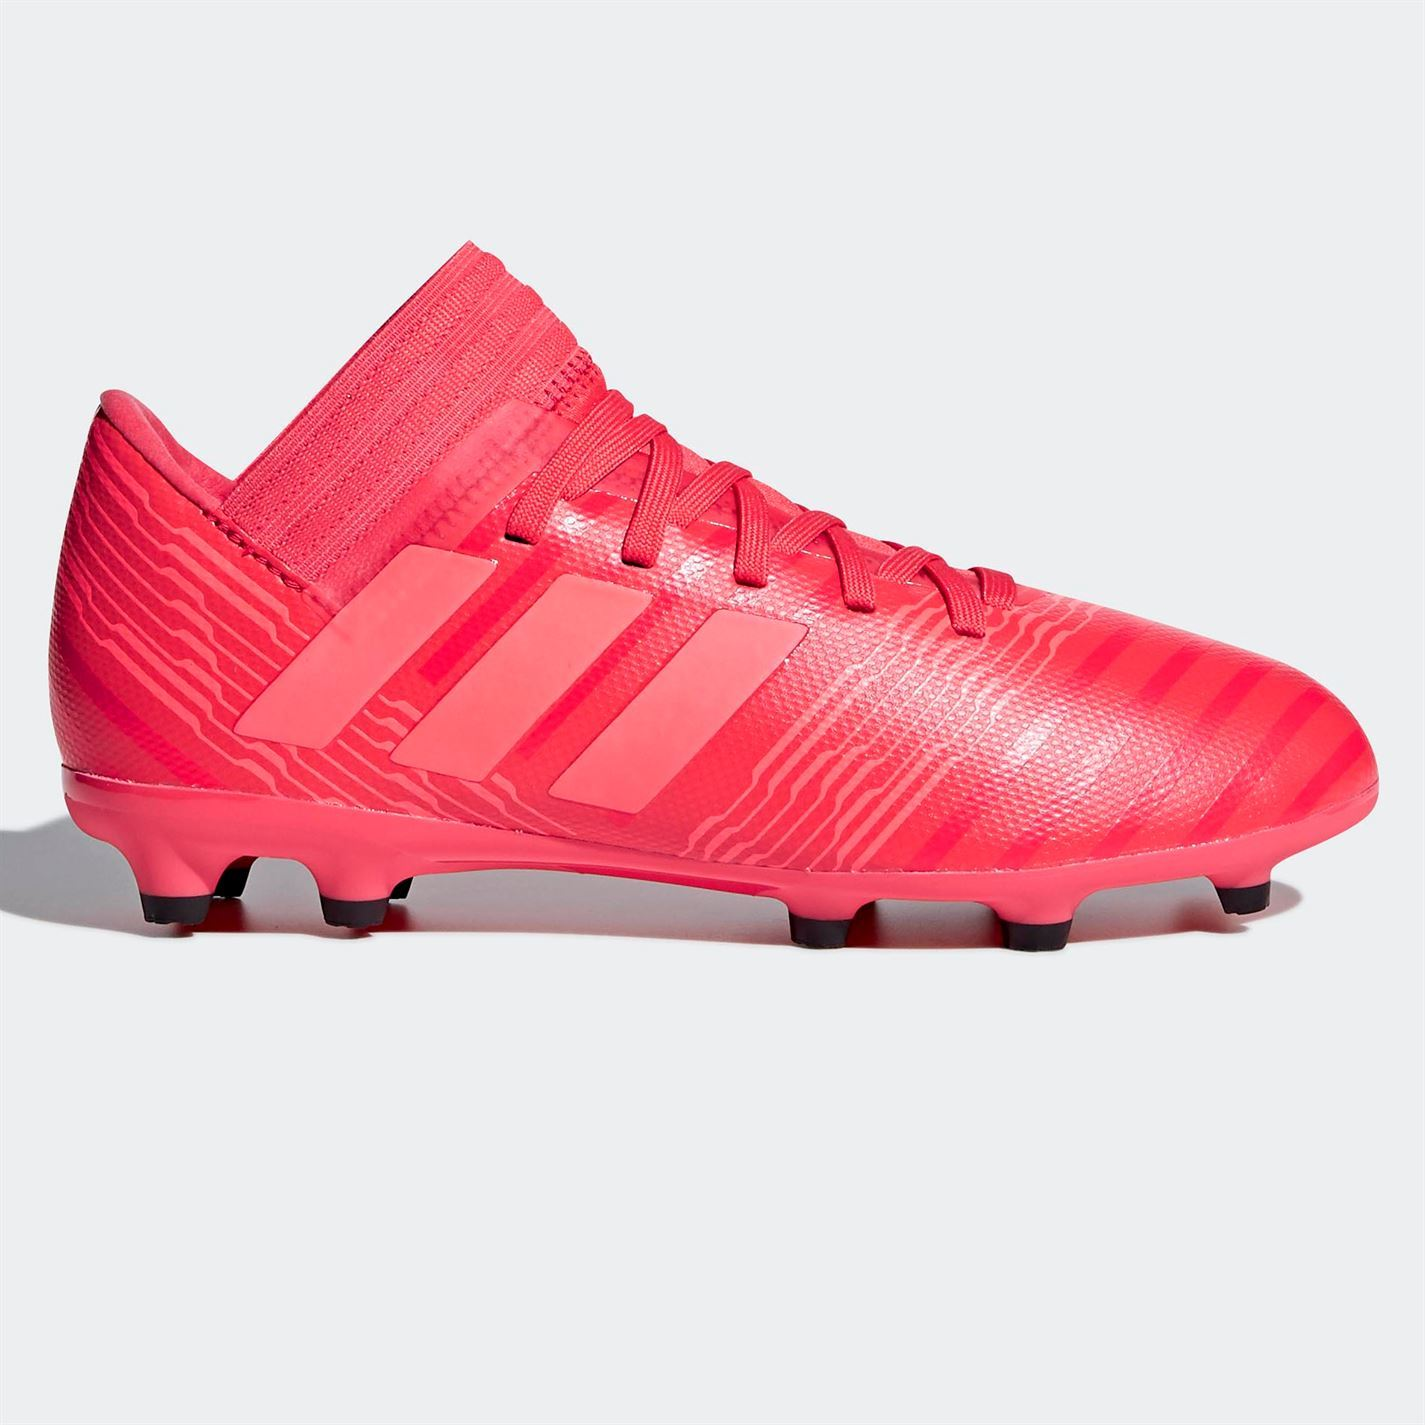 69ff7c09d040 ... adidas Nemeziz 17.3 FG Firm Ground Football Boots Childs Red Soccer  Shoes Cleats ...